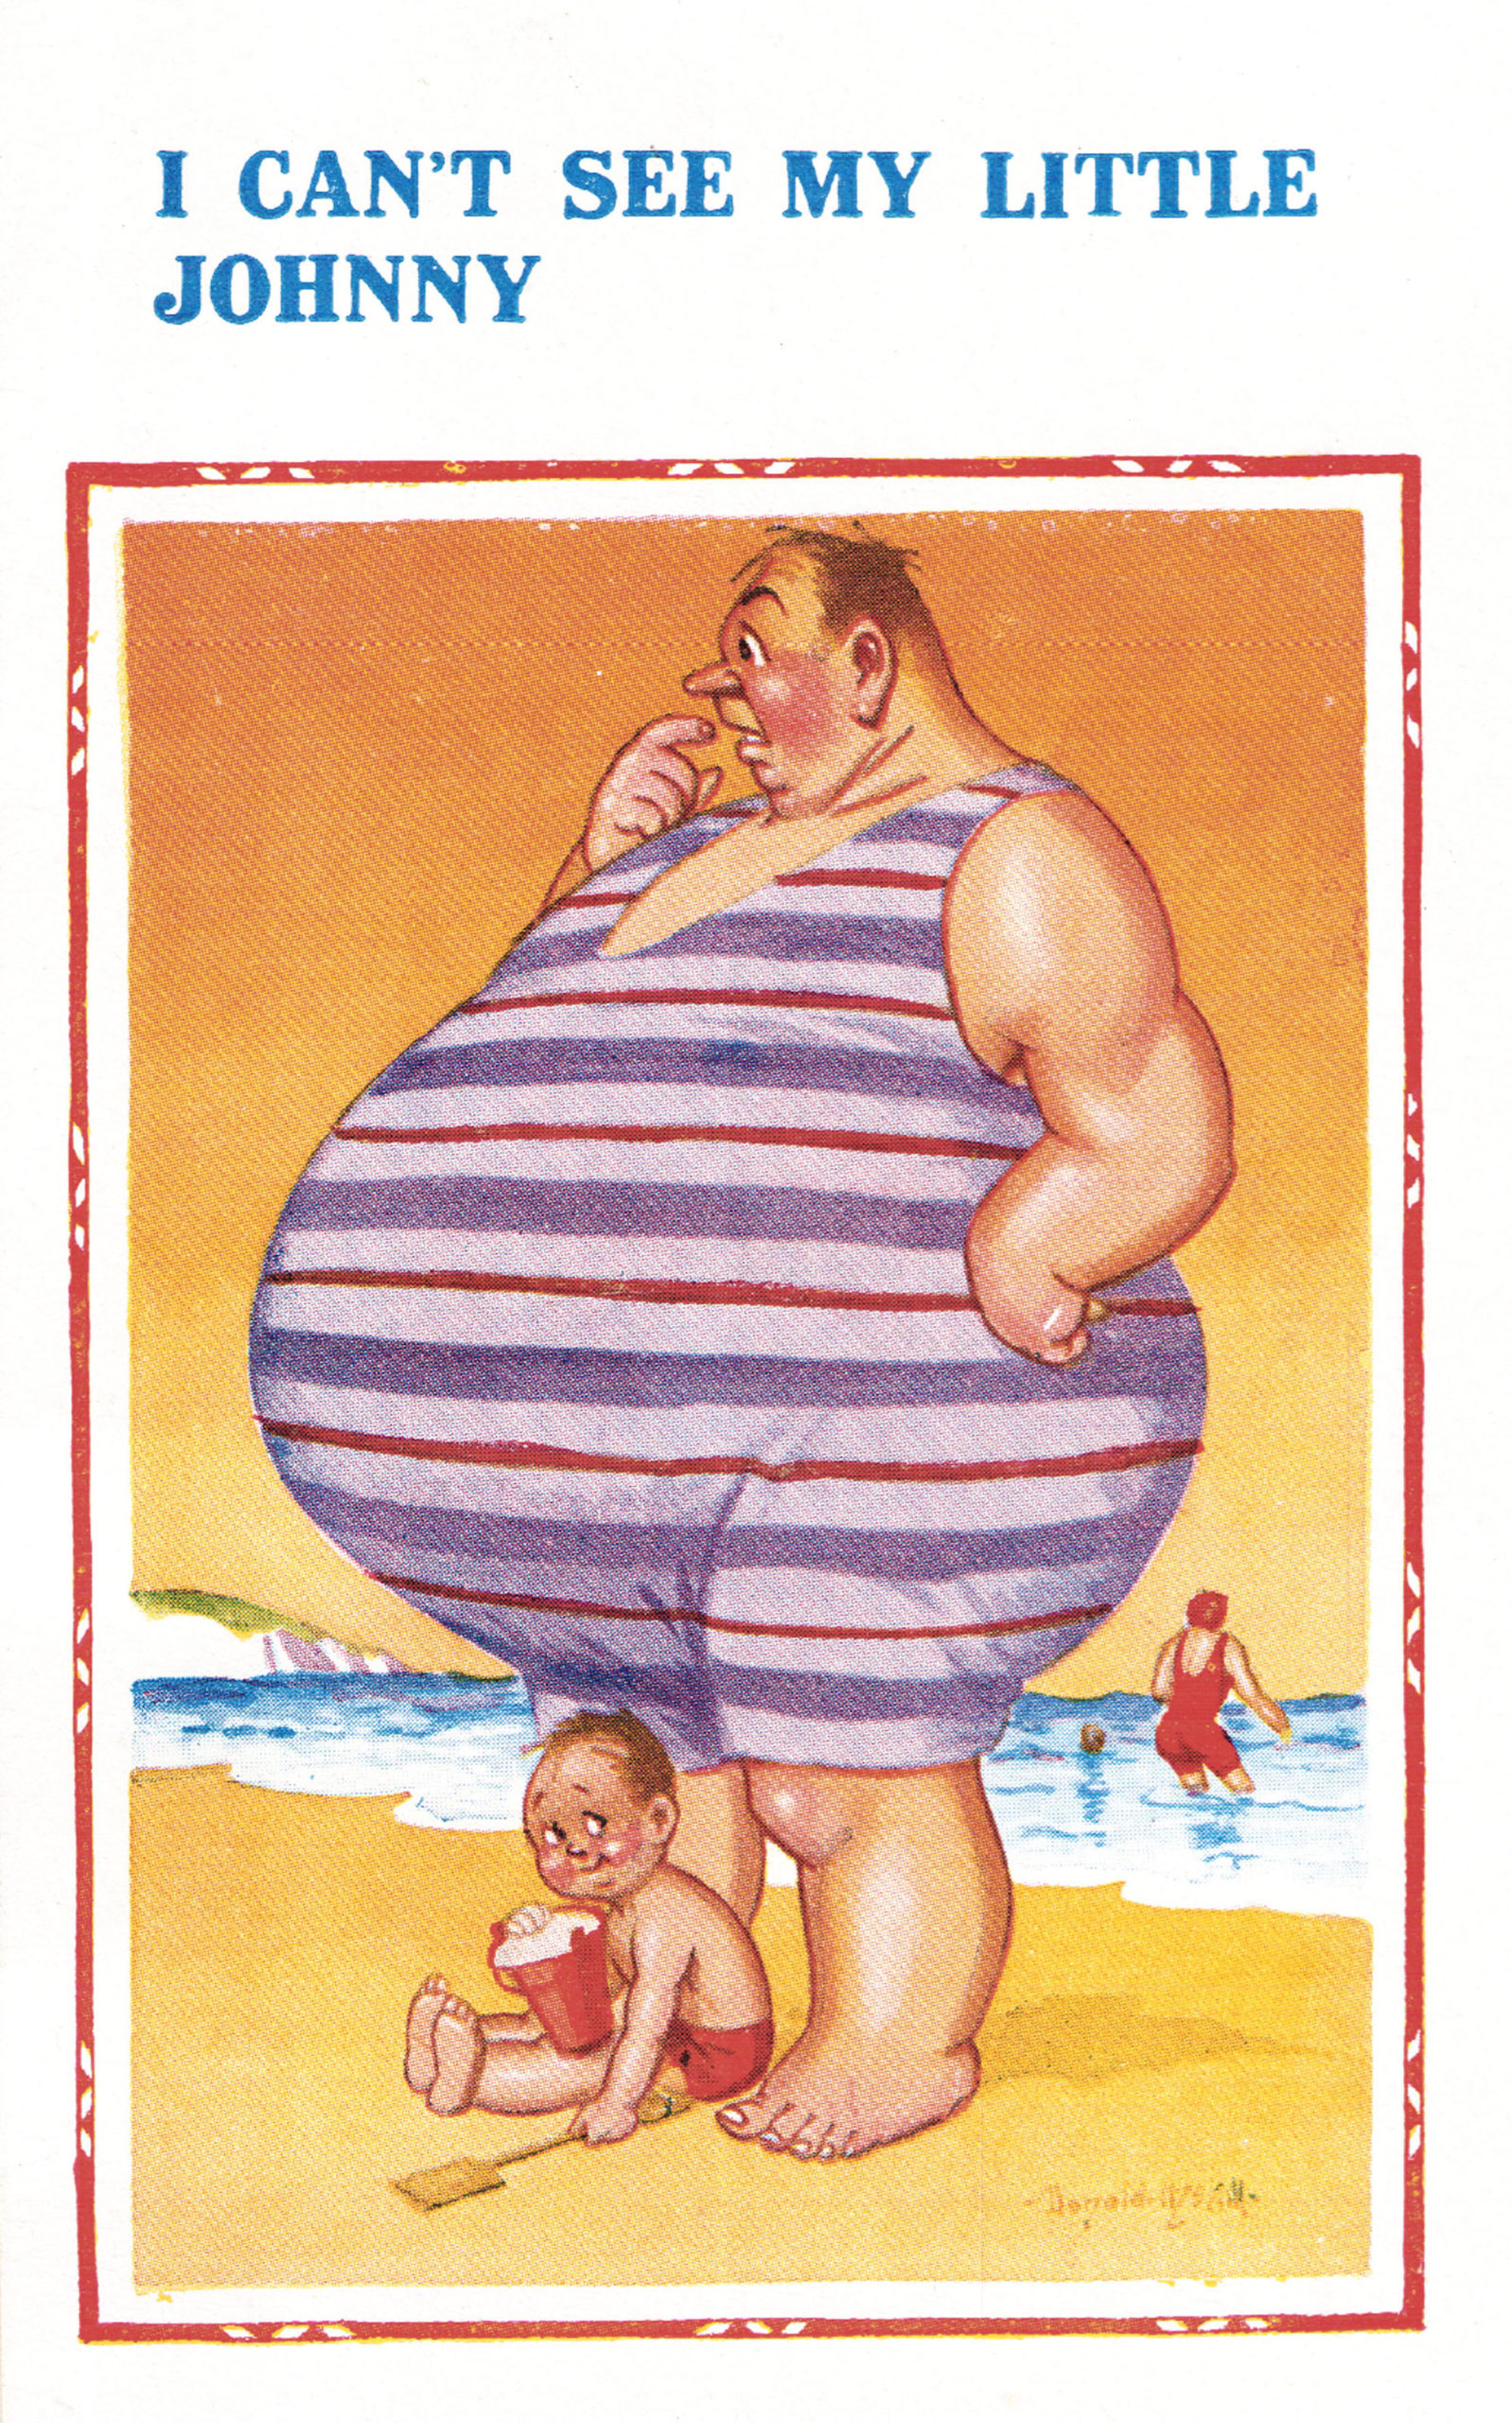 'I Can't See My Little Johnny' - Humorous saucy seaside postcard design by Donald McGill (1875-1962) © The Donald McGill Archive Collection / Mary Evans Picture Library